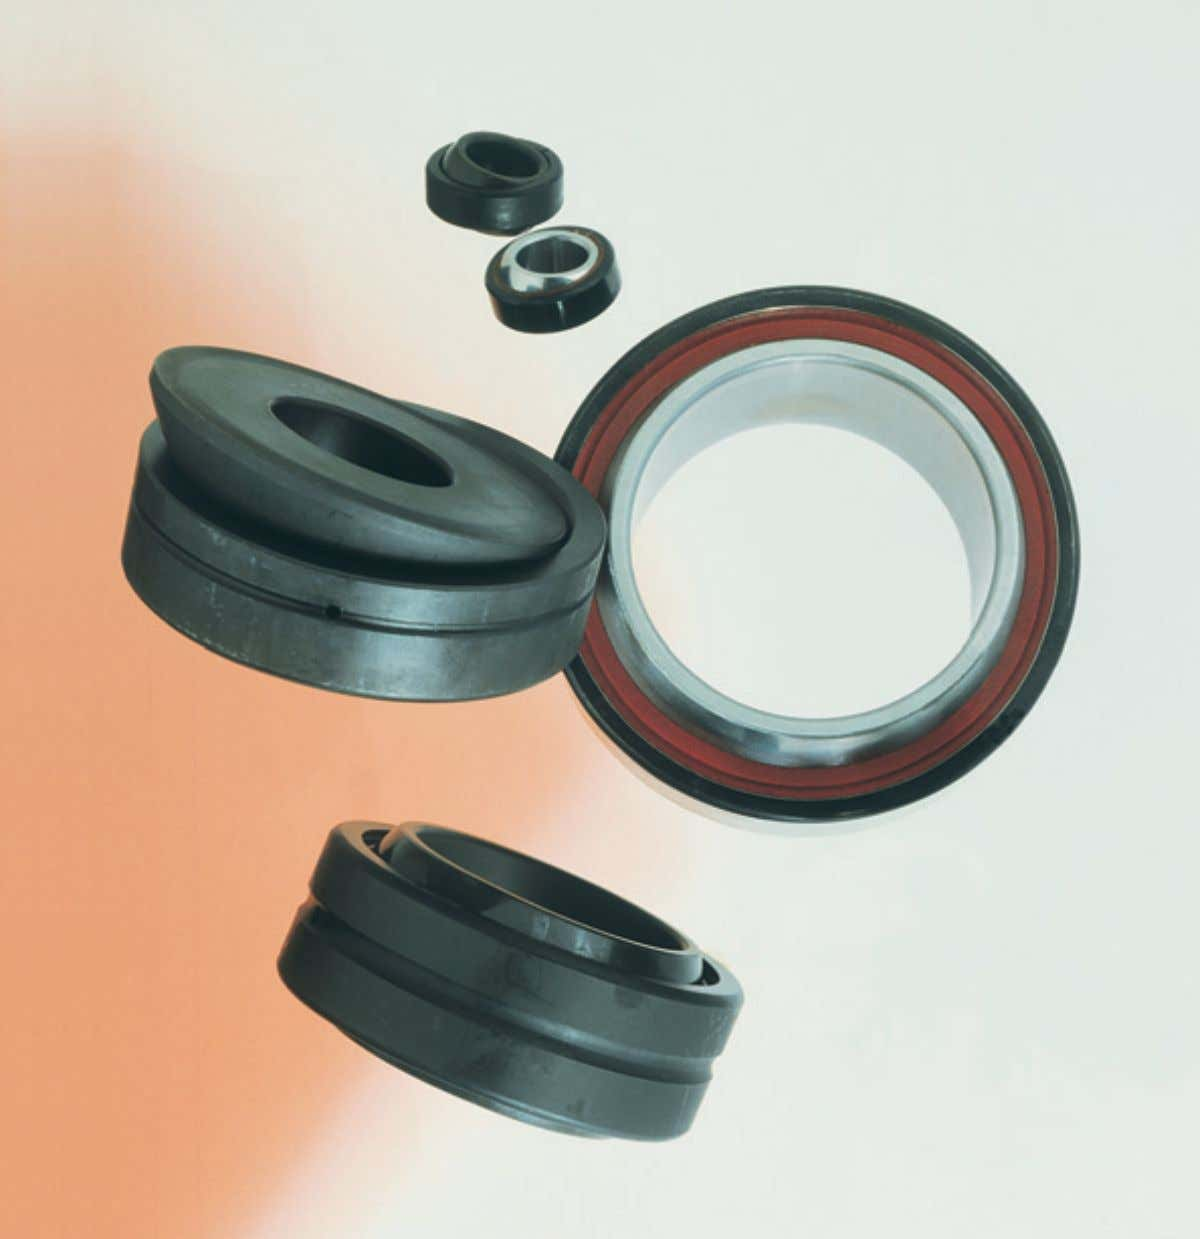 For New Technology Network R corporation Spherical Plain Bearings CAT. No. 5301- @ /E